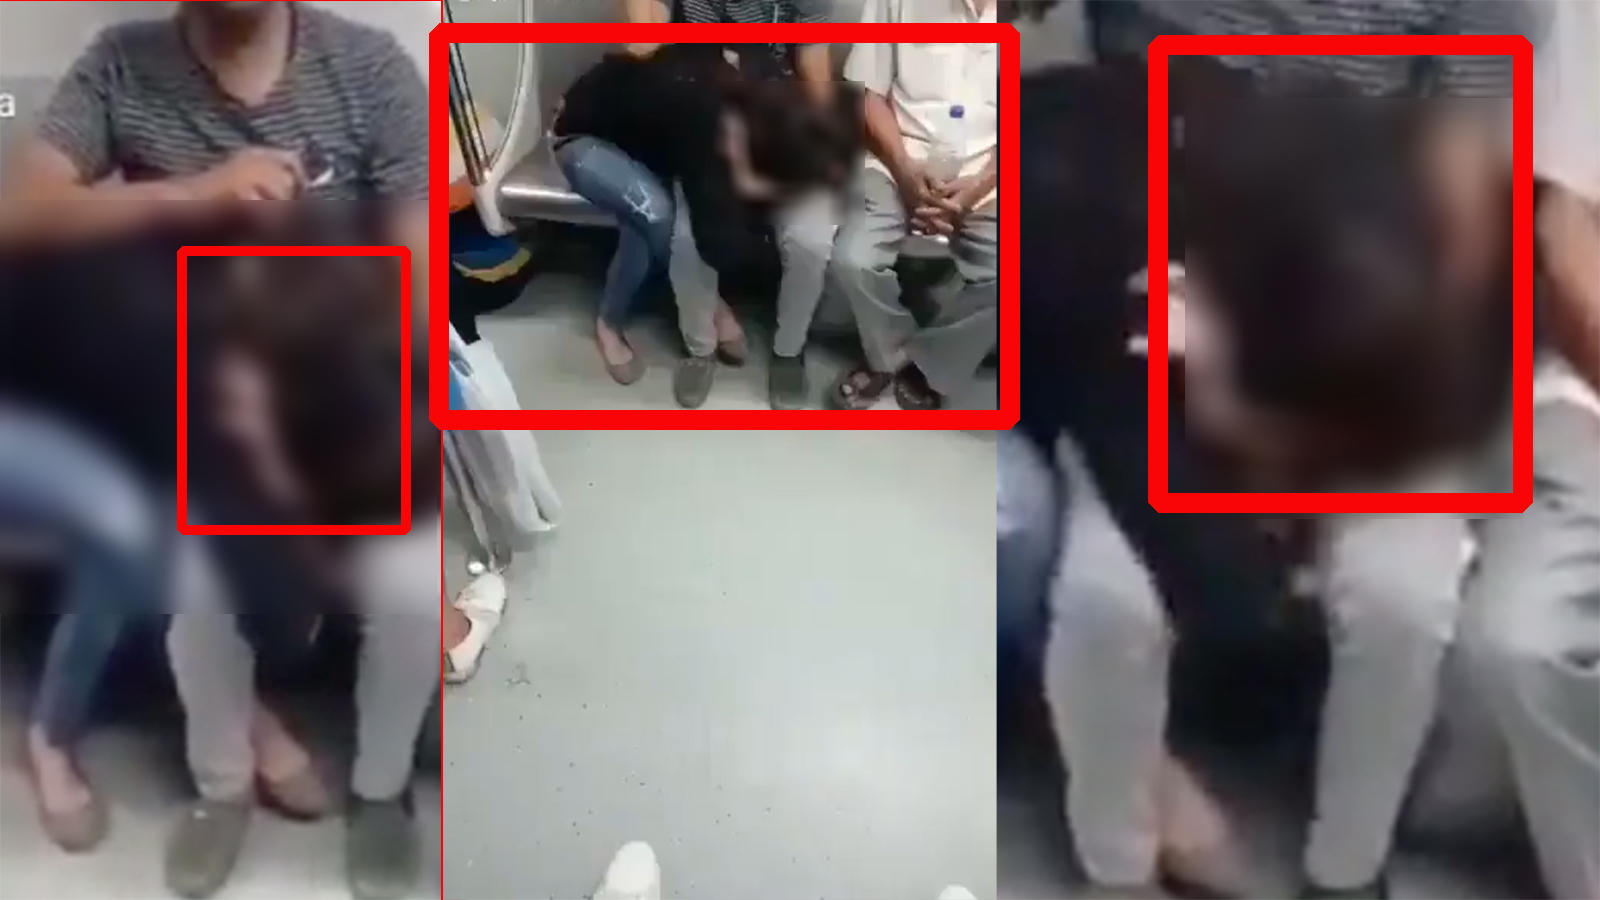 watch-couples-pda-caught-on-camera-on-public-transport